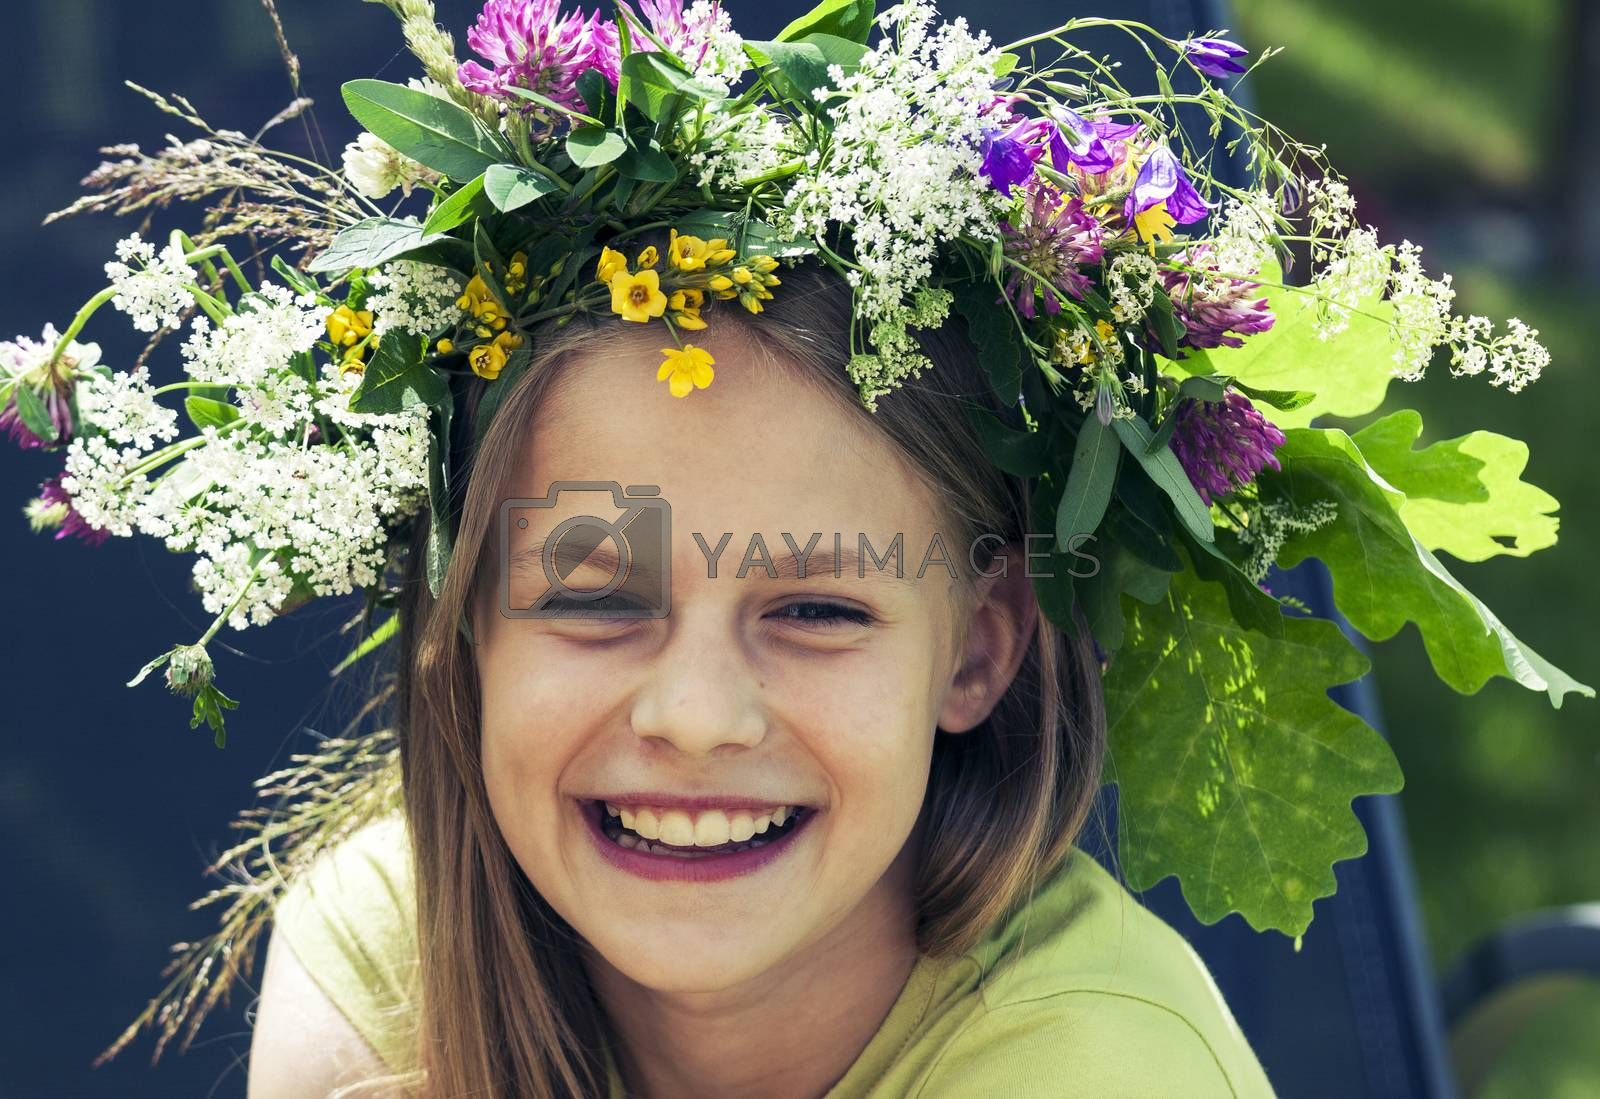 Portrait of happy smiling young girl with flower wreath on her head on sunny summer day. Cross processing effect added